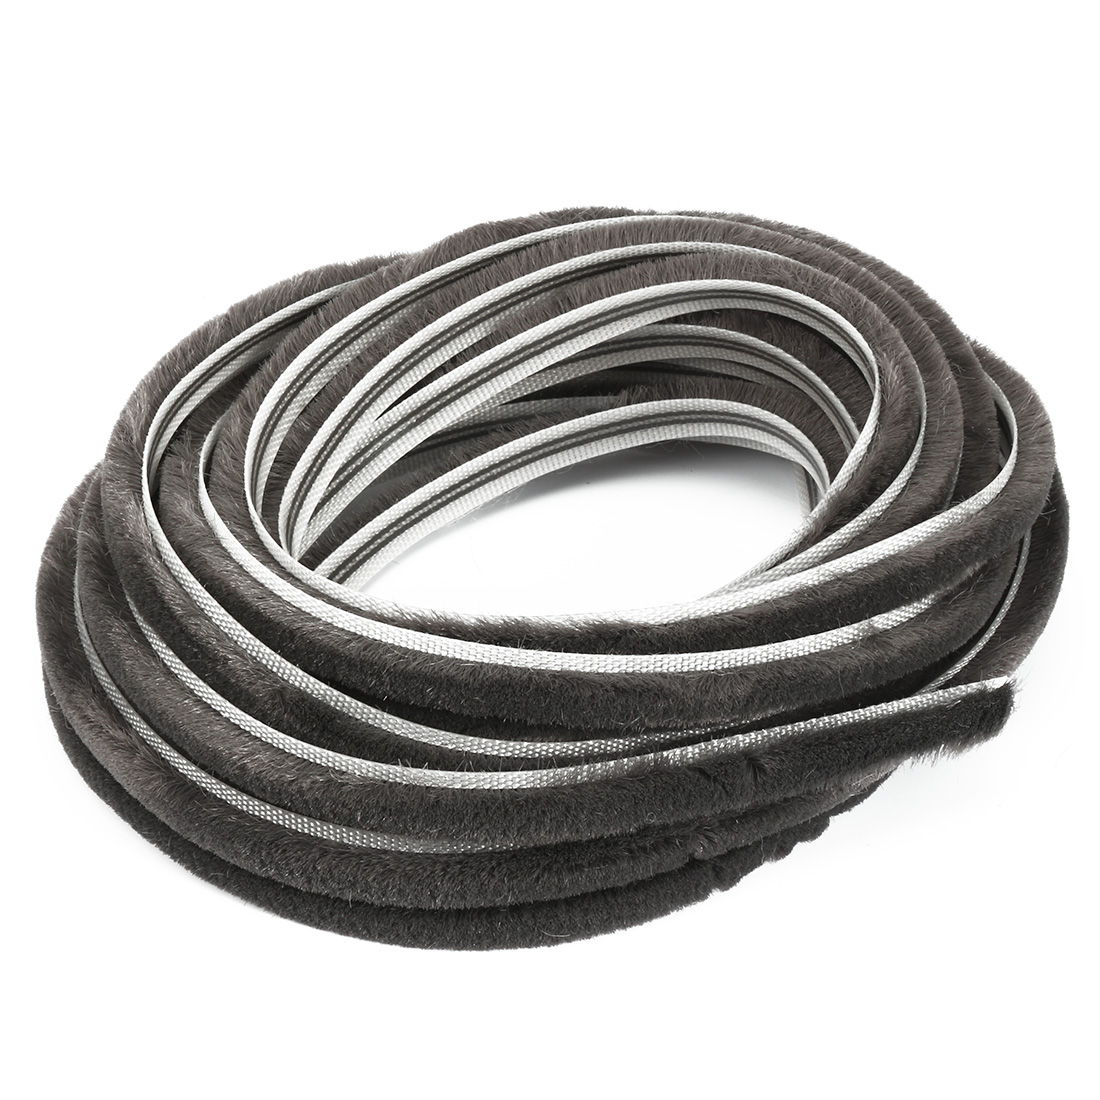 Window Weather Seal Strip 3/16 Inch Width x 1/4-Inch Thick x 16.4 Feet Length